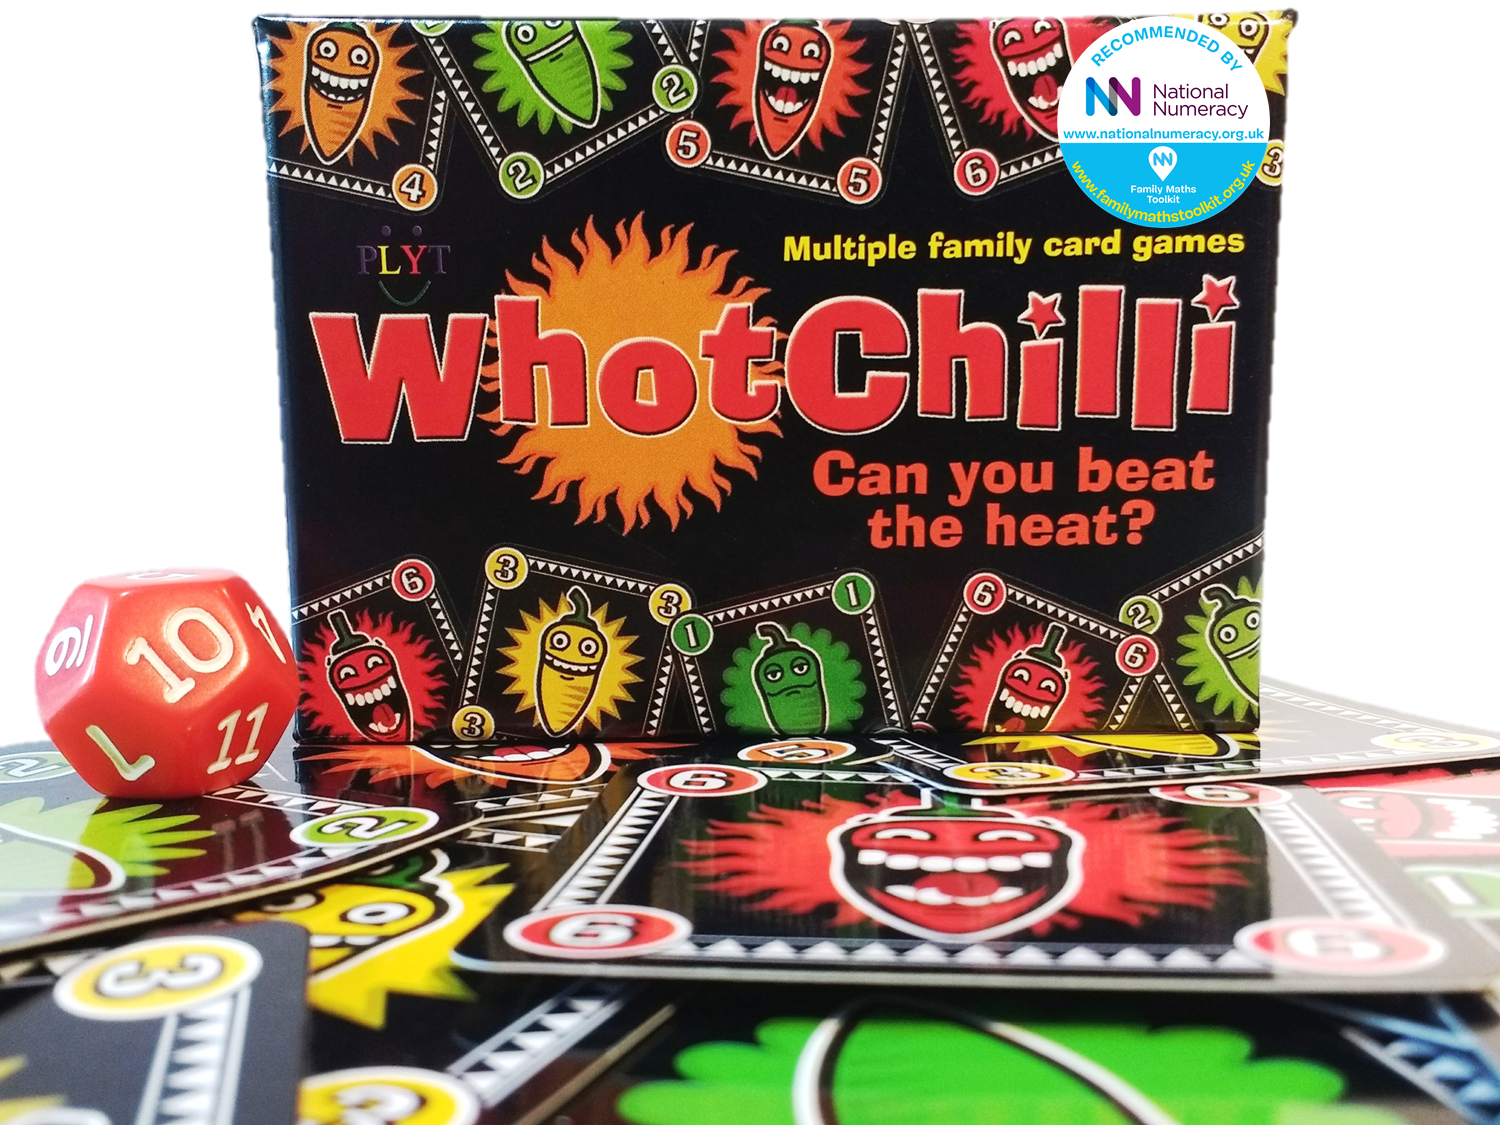 PLYT Whotchilli family card games endorsed